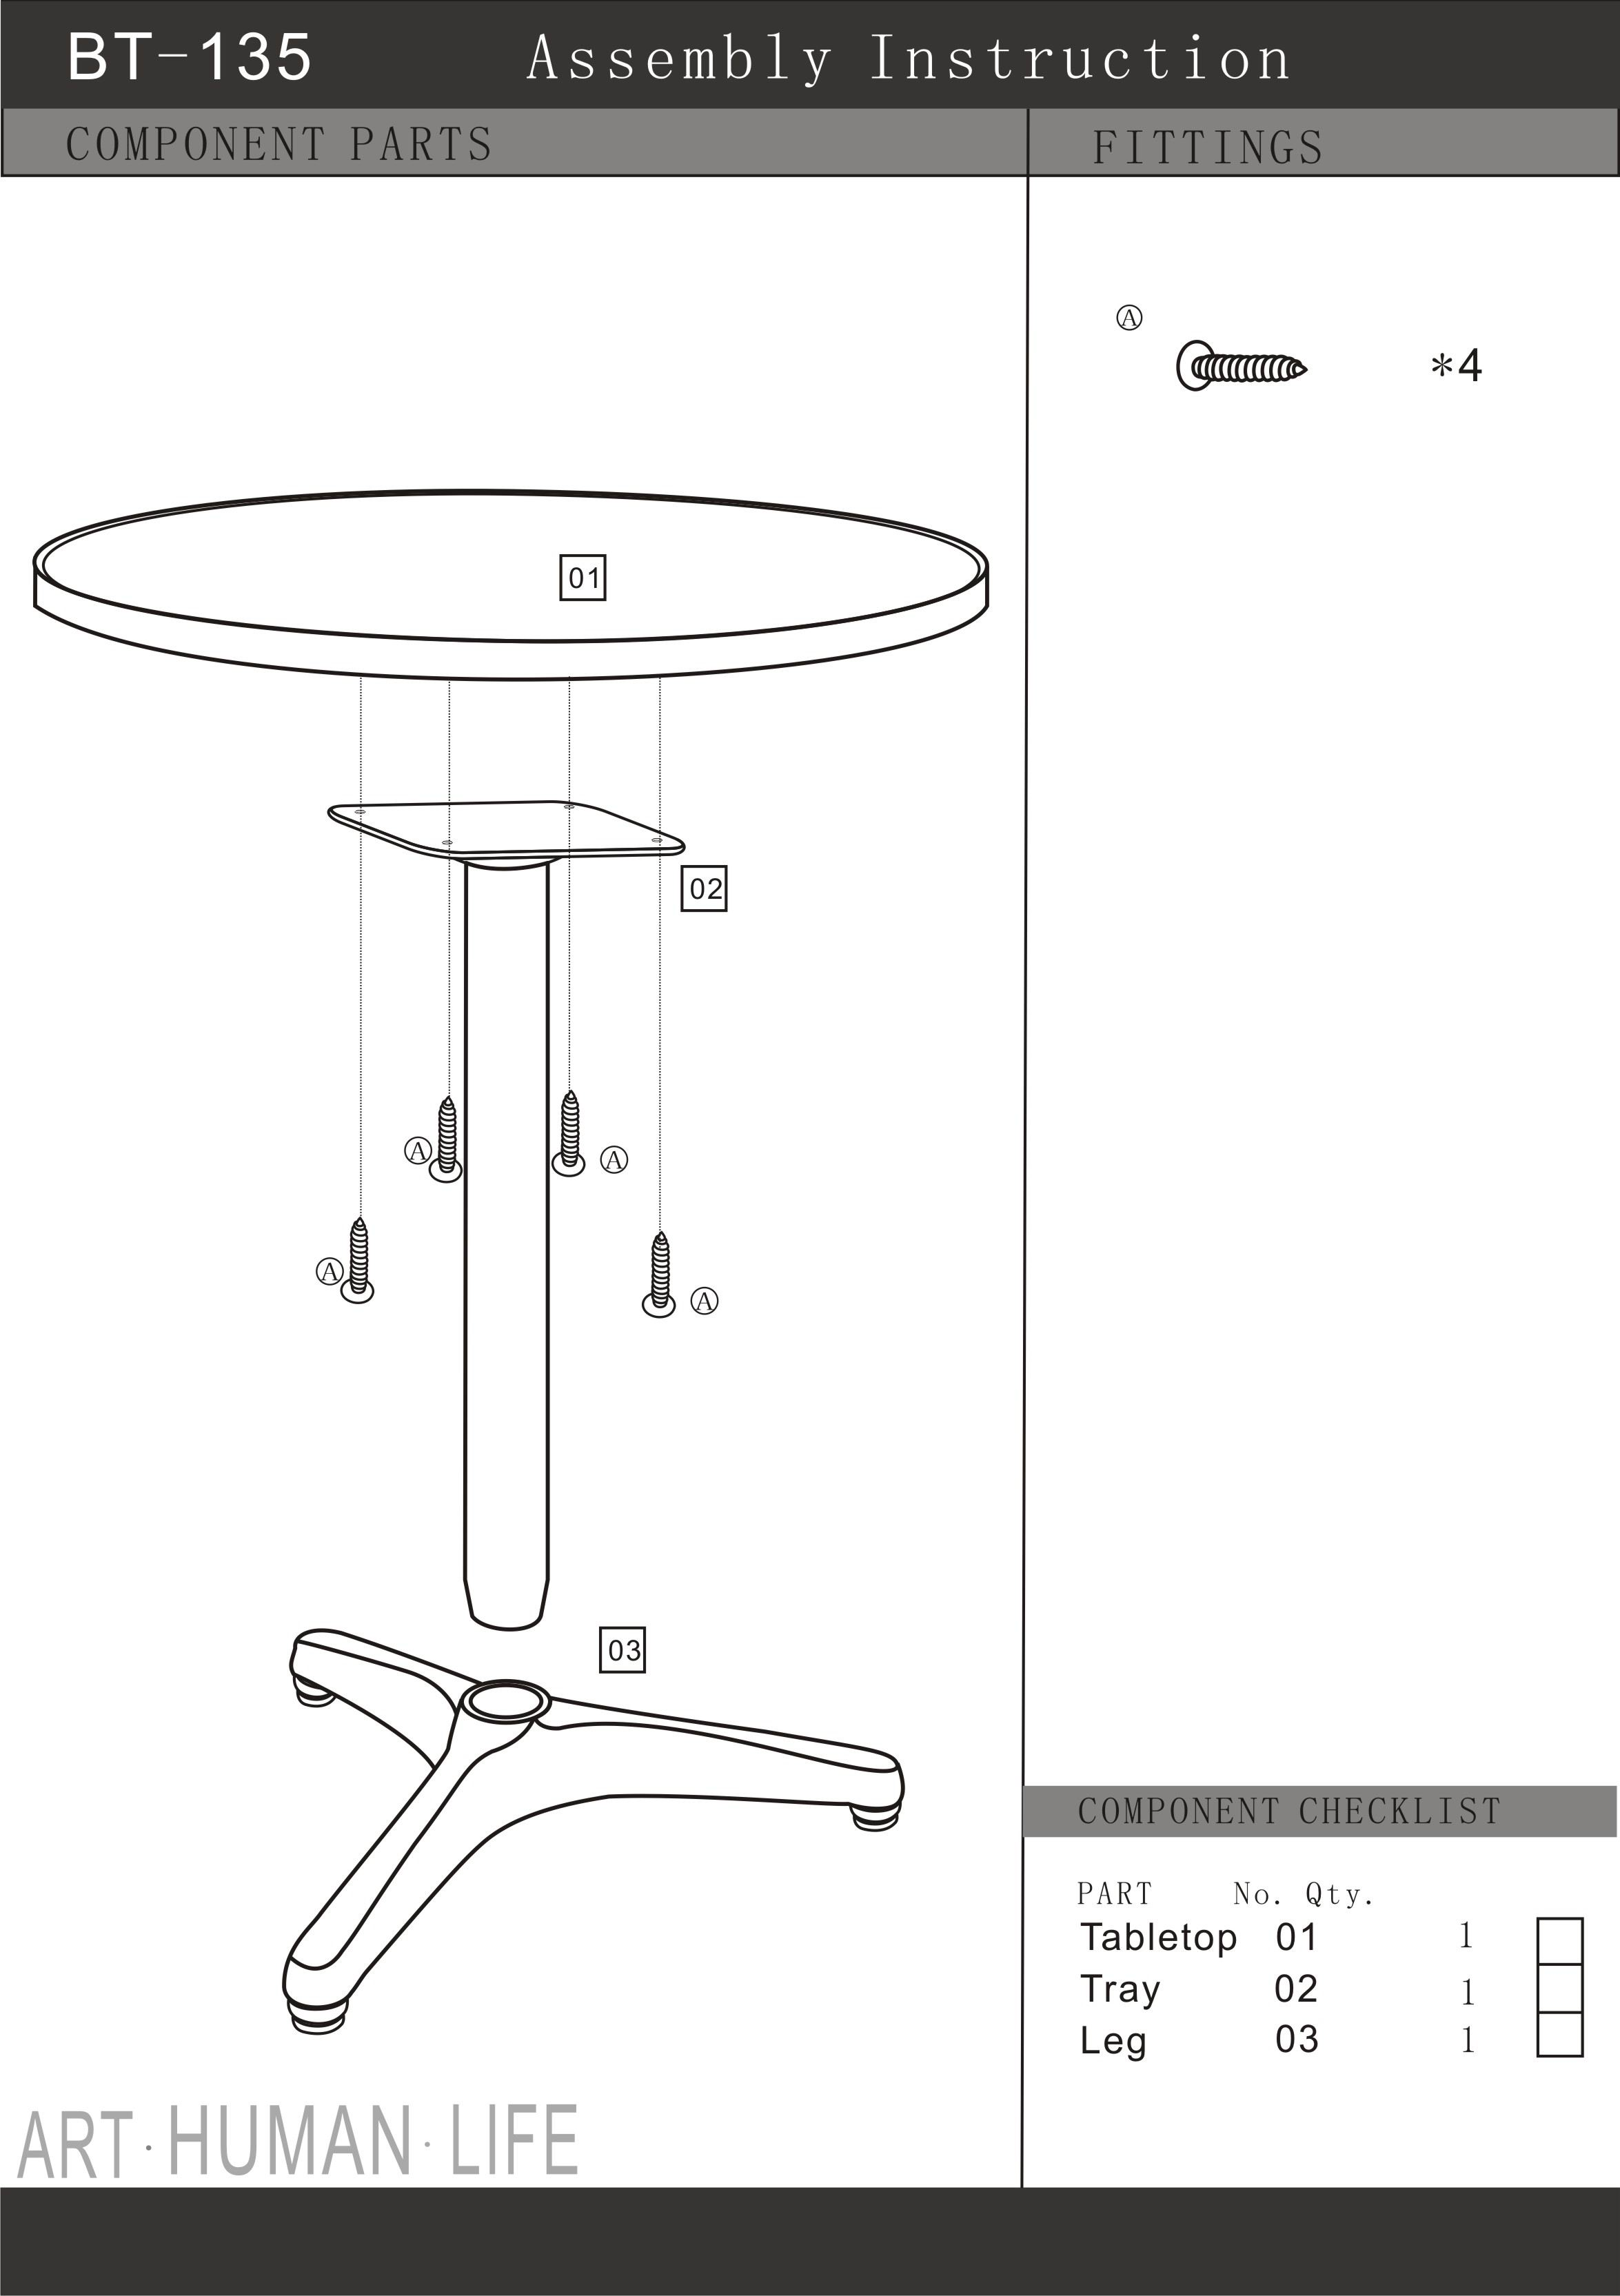 Dimension Table Bar Assembly Instructions